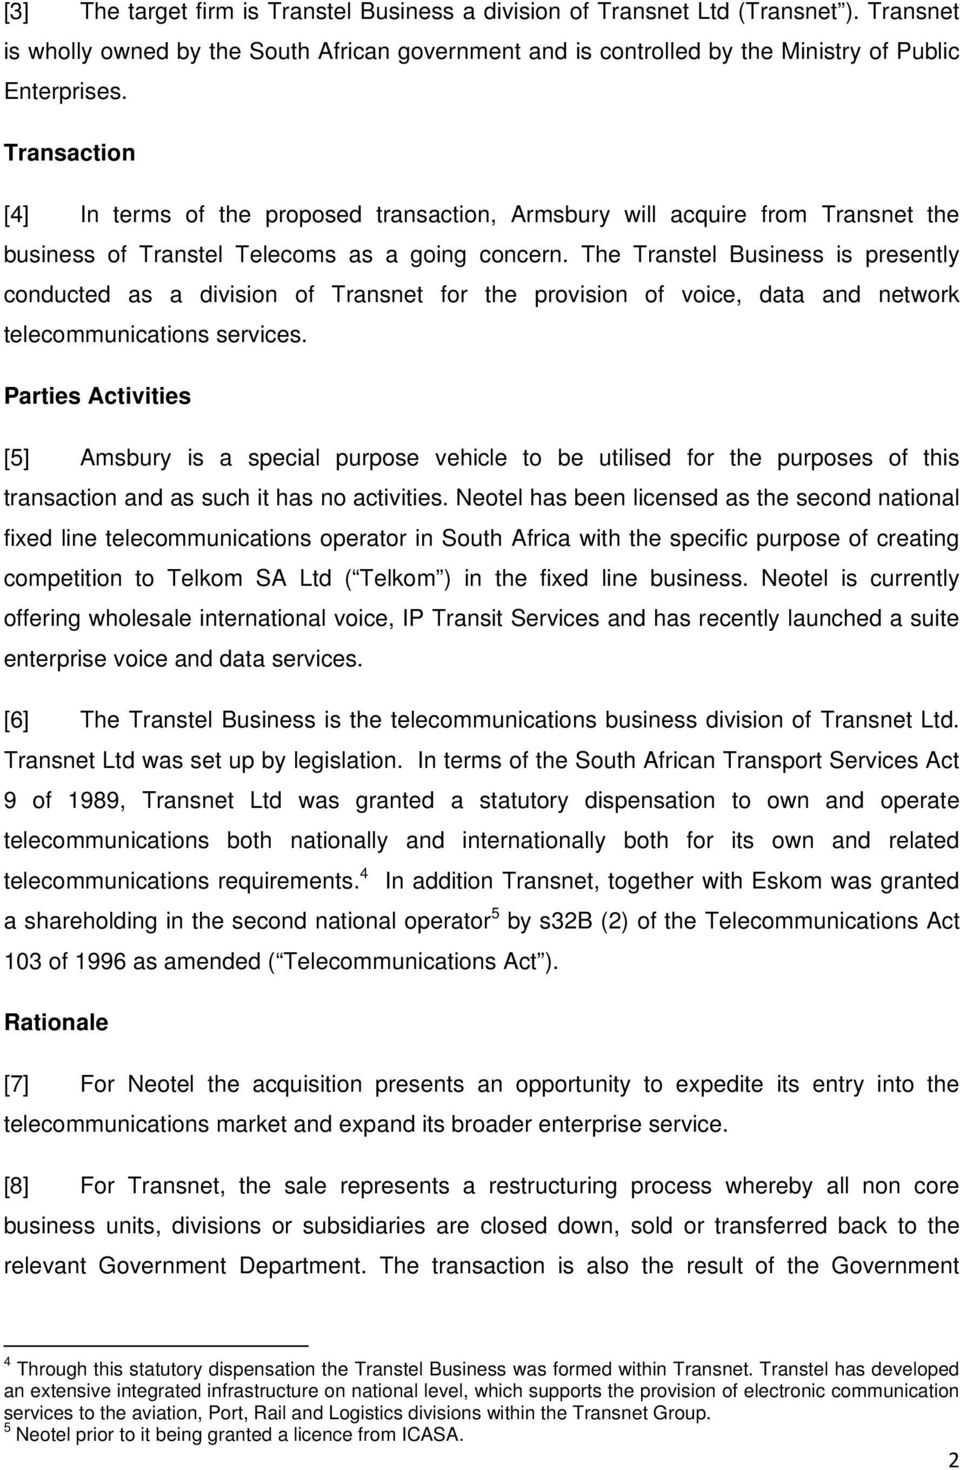 The Transtel Business is presently conducted as a division of Transnet for the provision of voice, data and network telecommunications services.